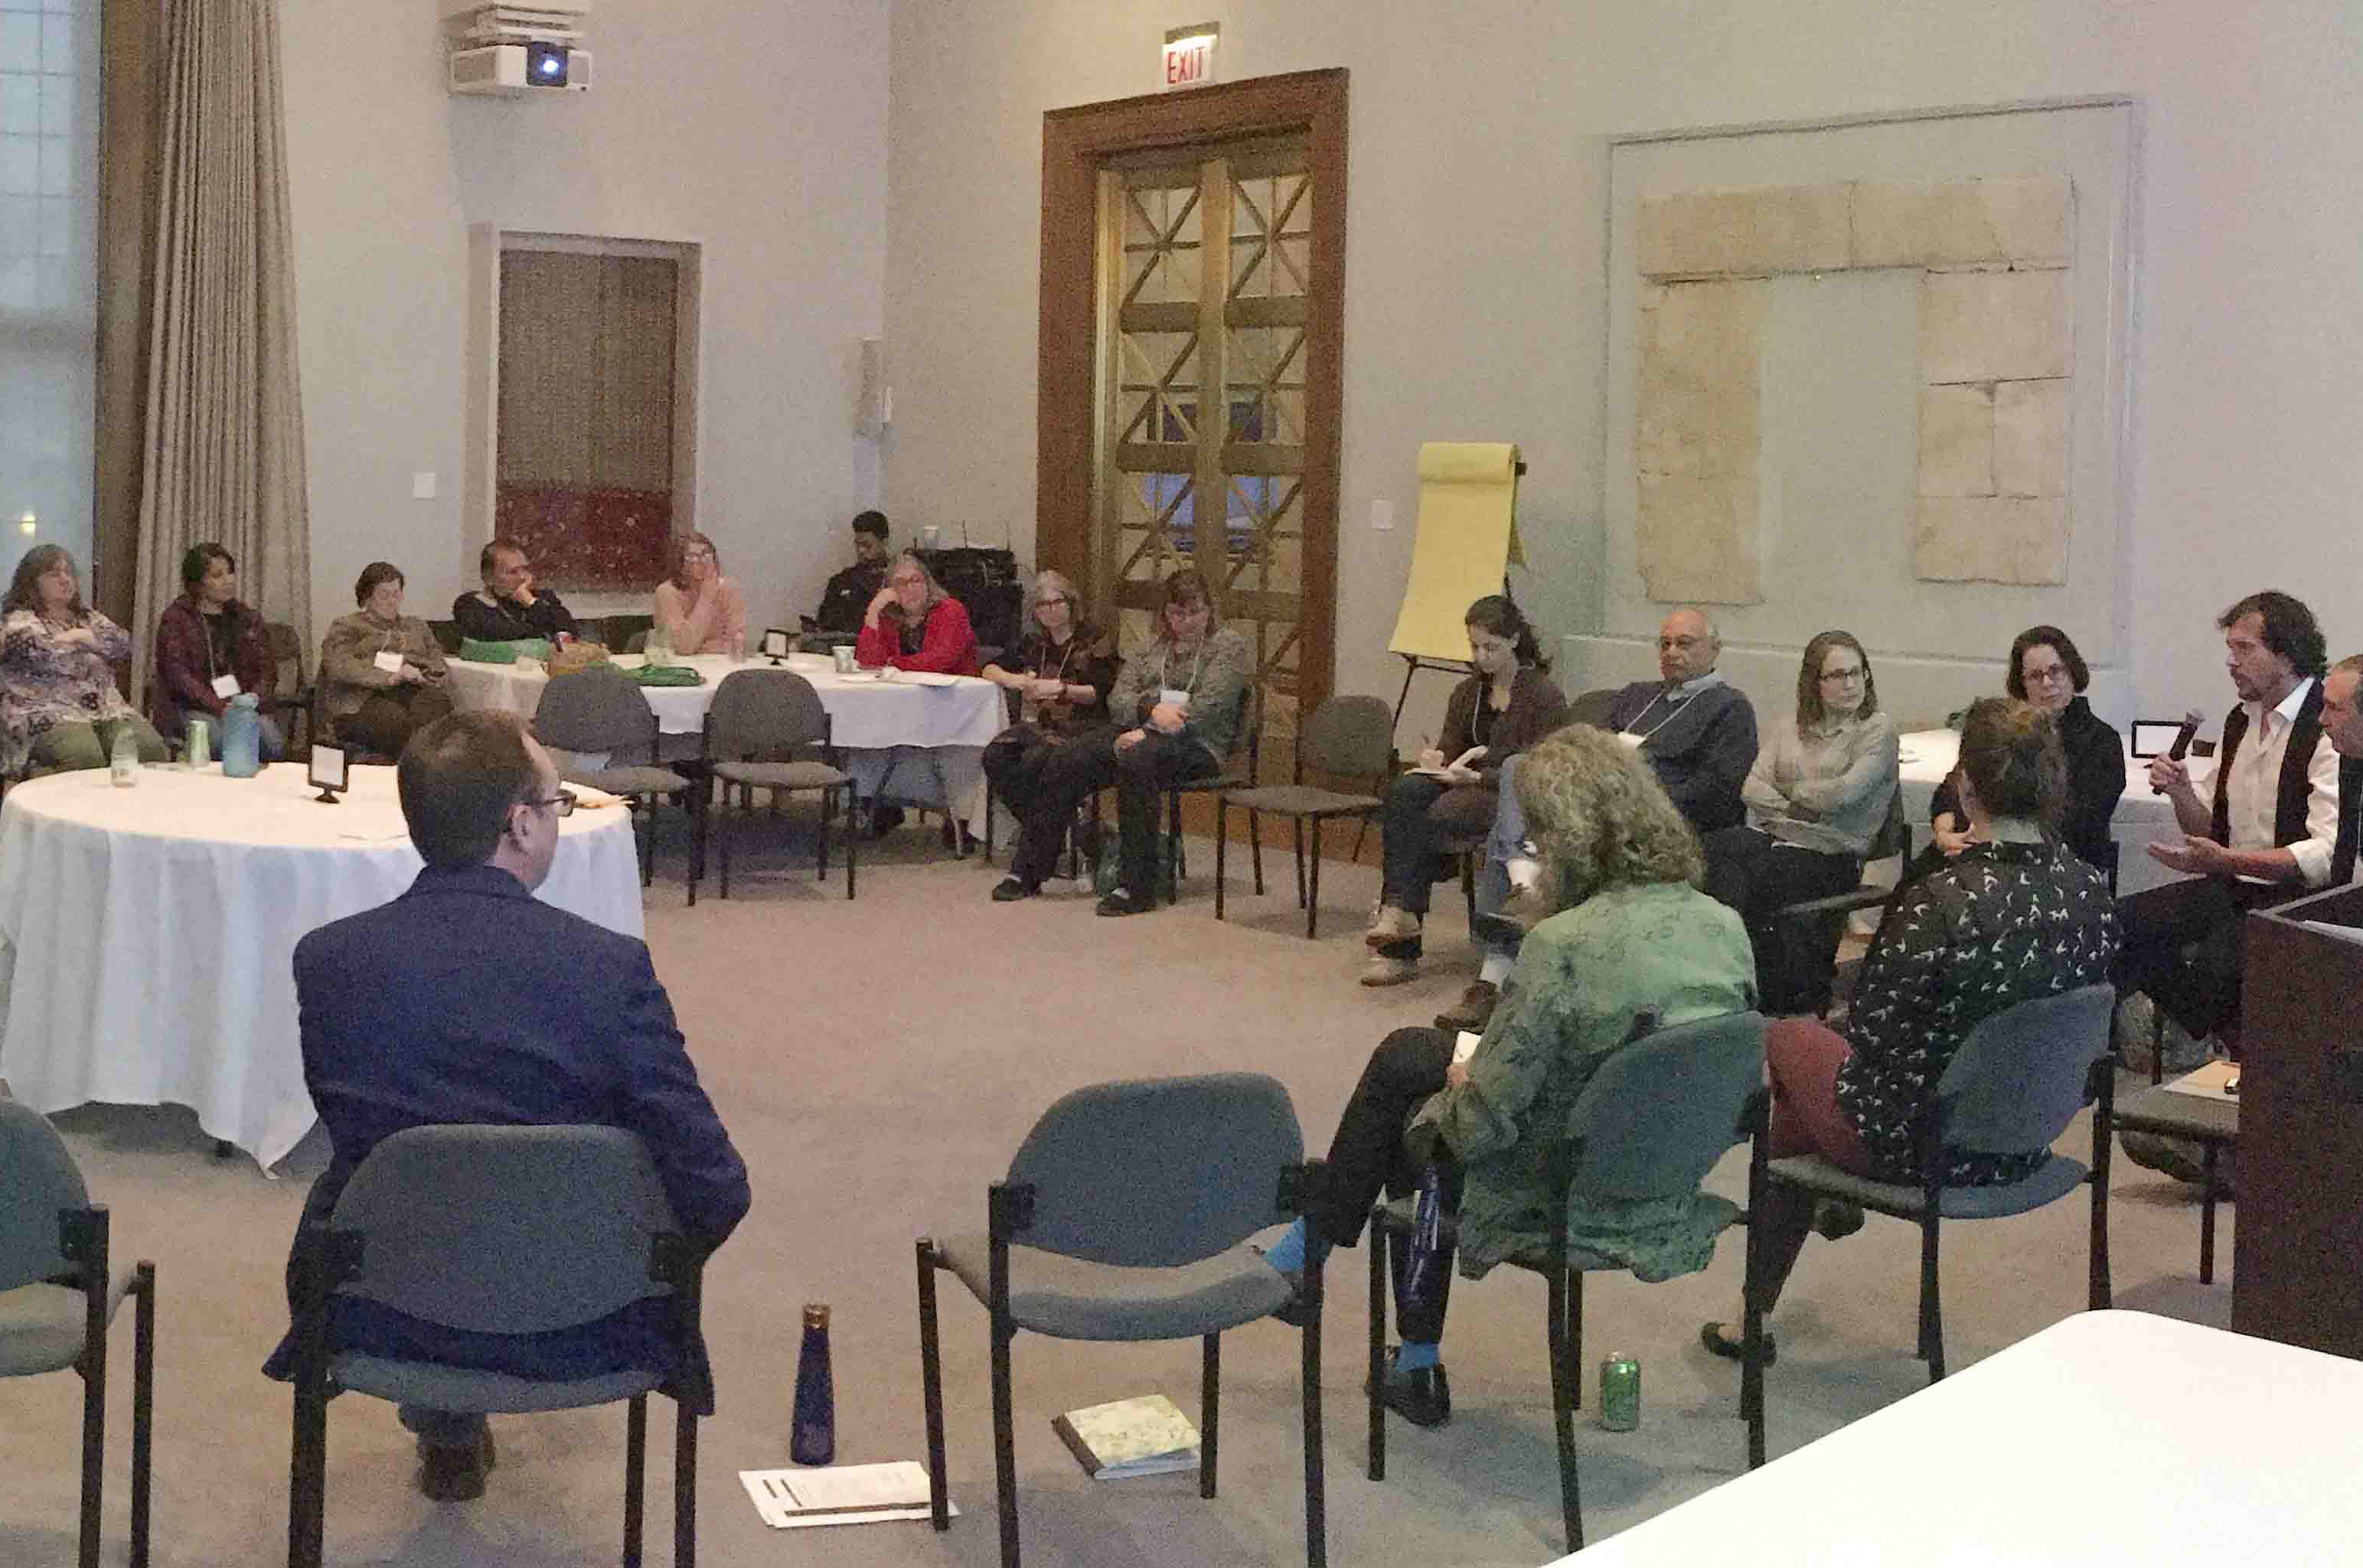 Participants discuss the respectful care of human remains at the 2017 IMLS Collaborative Curation of North American Human Remains Symposium at the Field Museum.